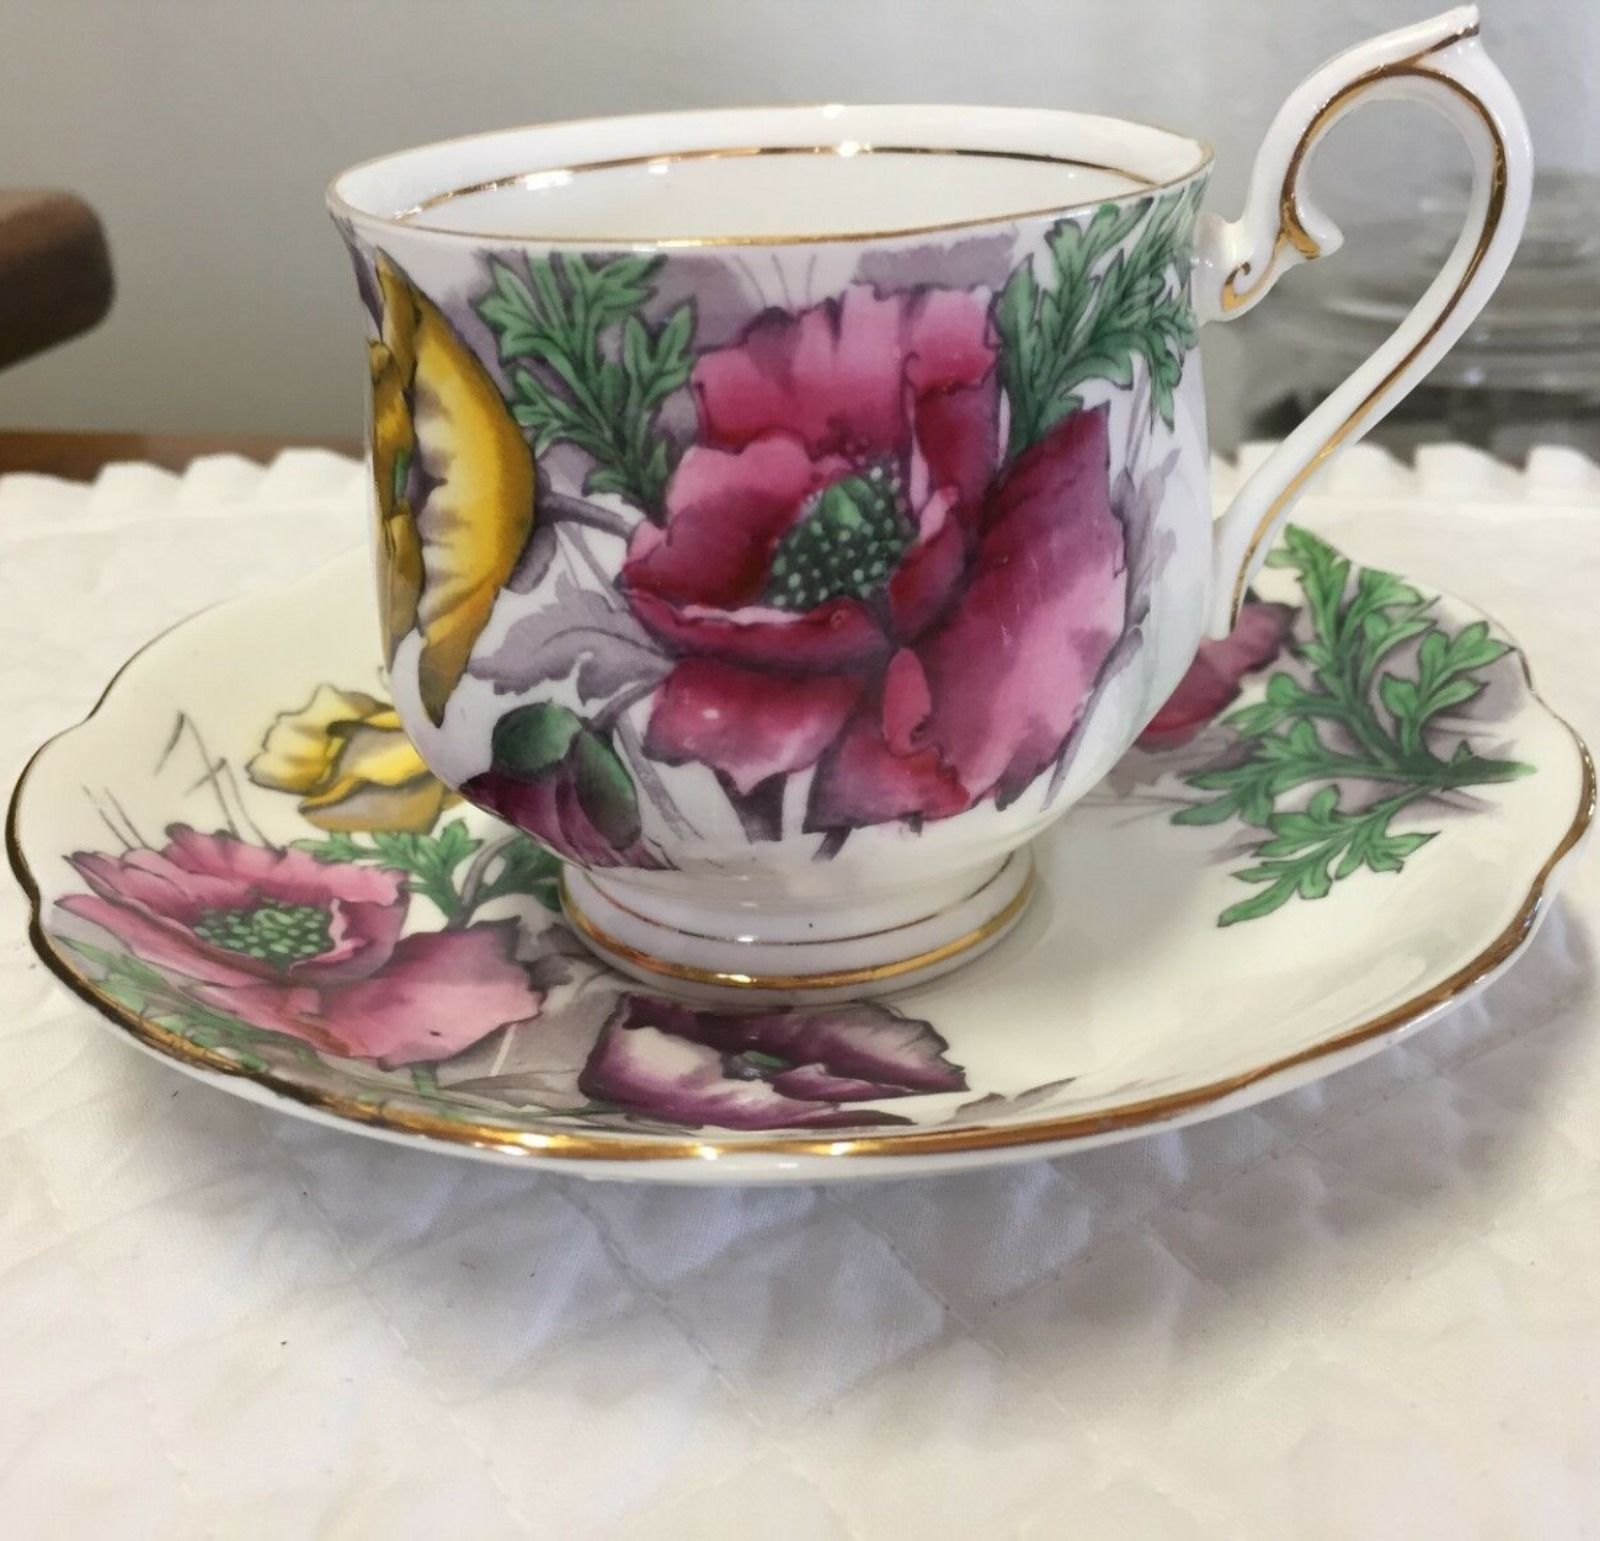 Details About Royal Albert Cup Saucer Poppy Flower Of The Month Bone China Decorative Arts In 2020 Tea Cups Bone China Tea Cups Cup And Saucer